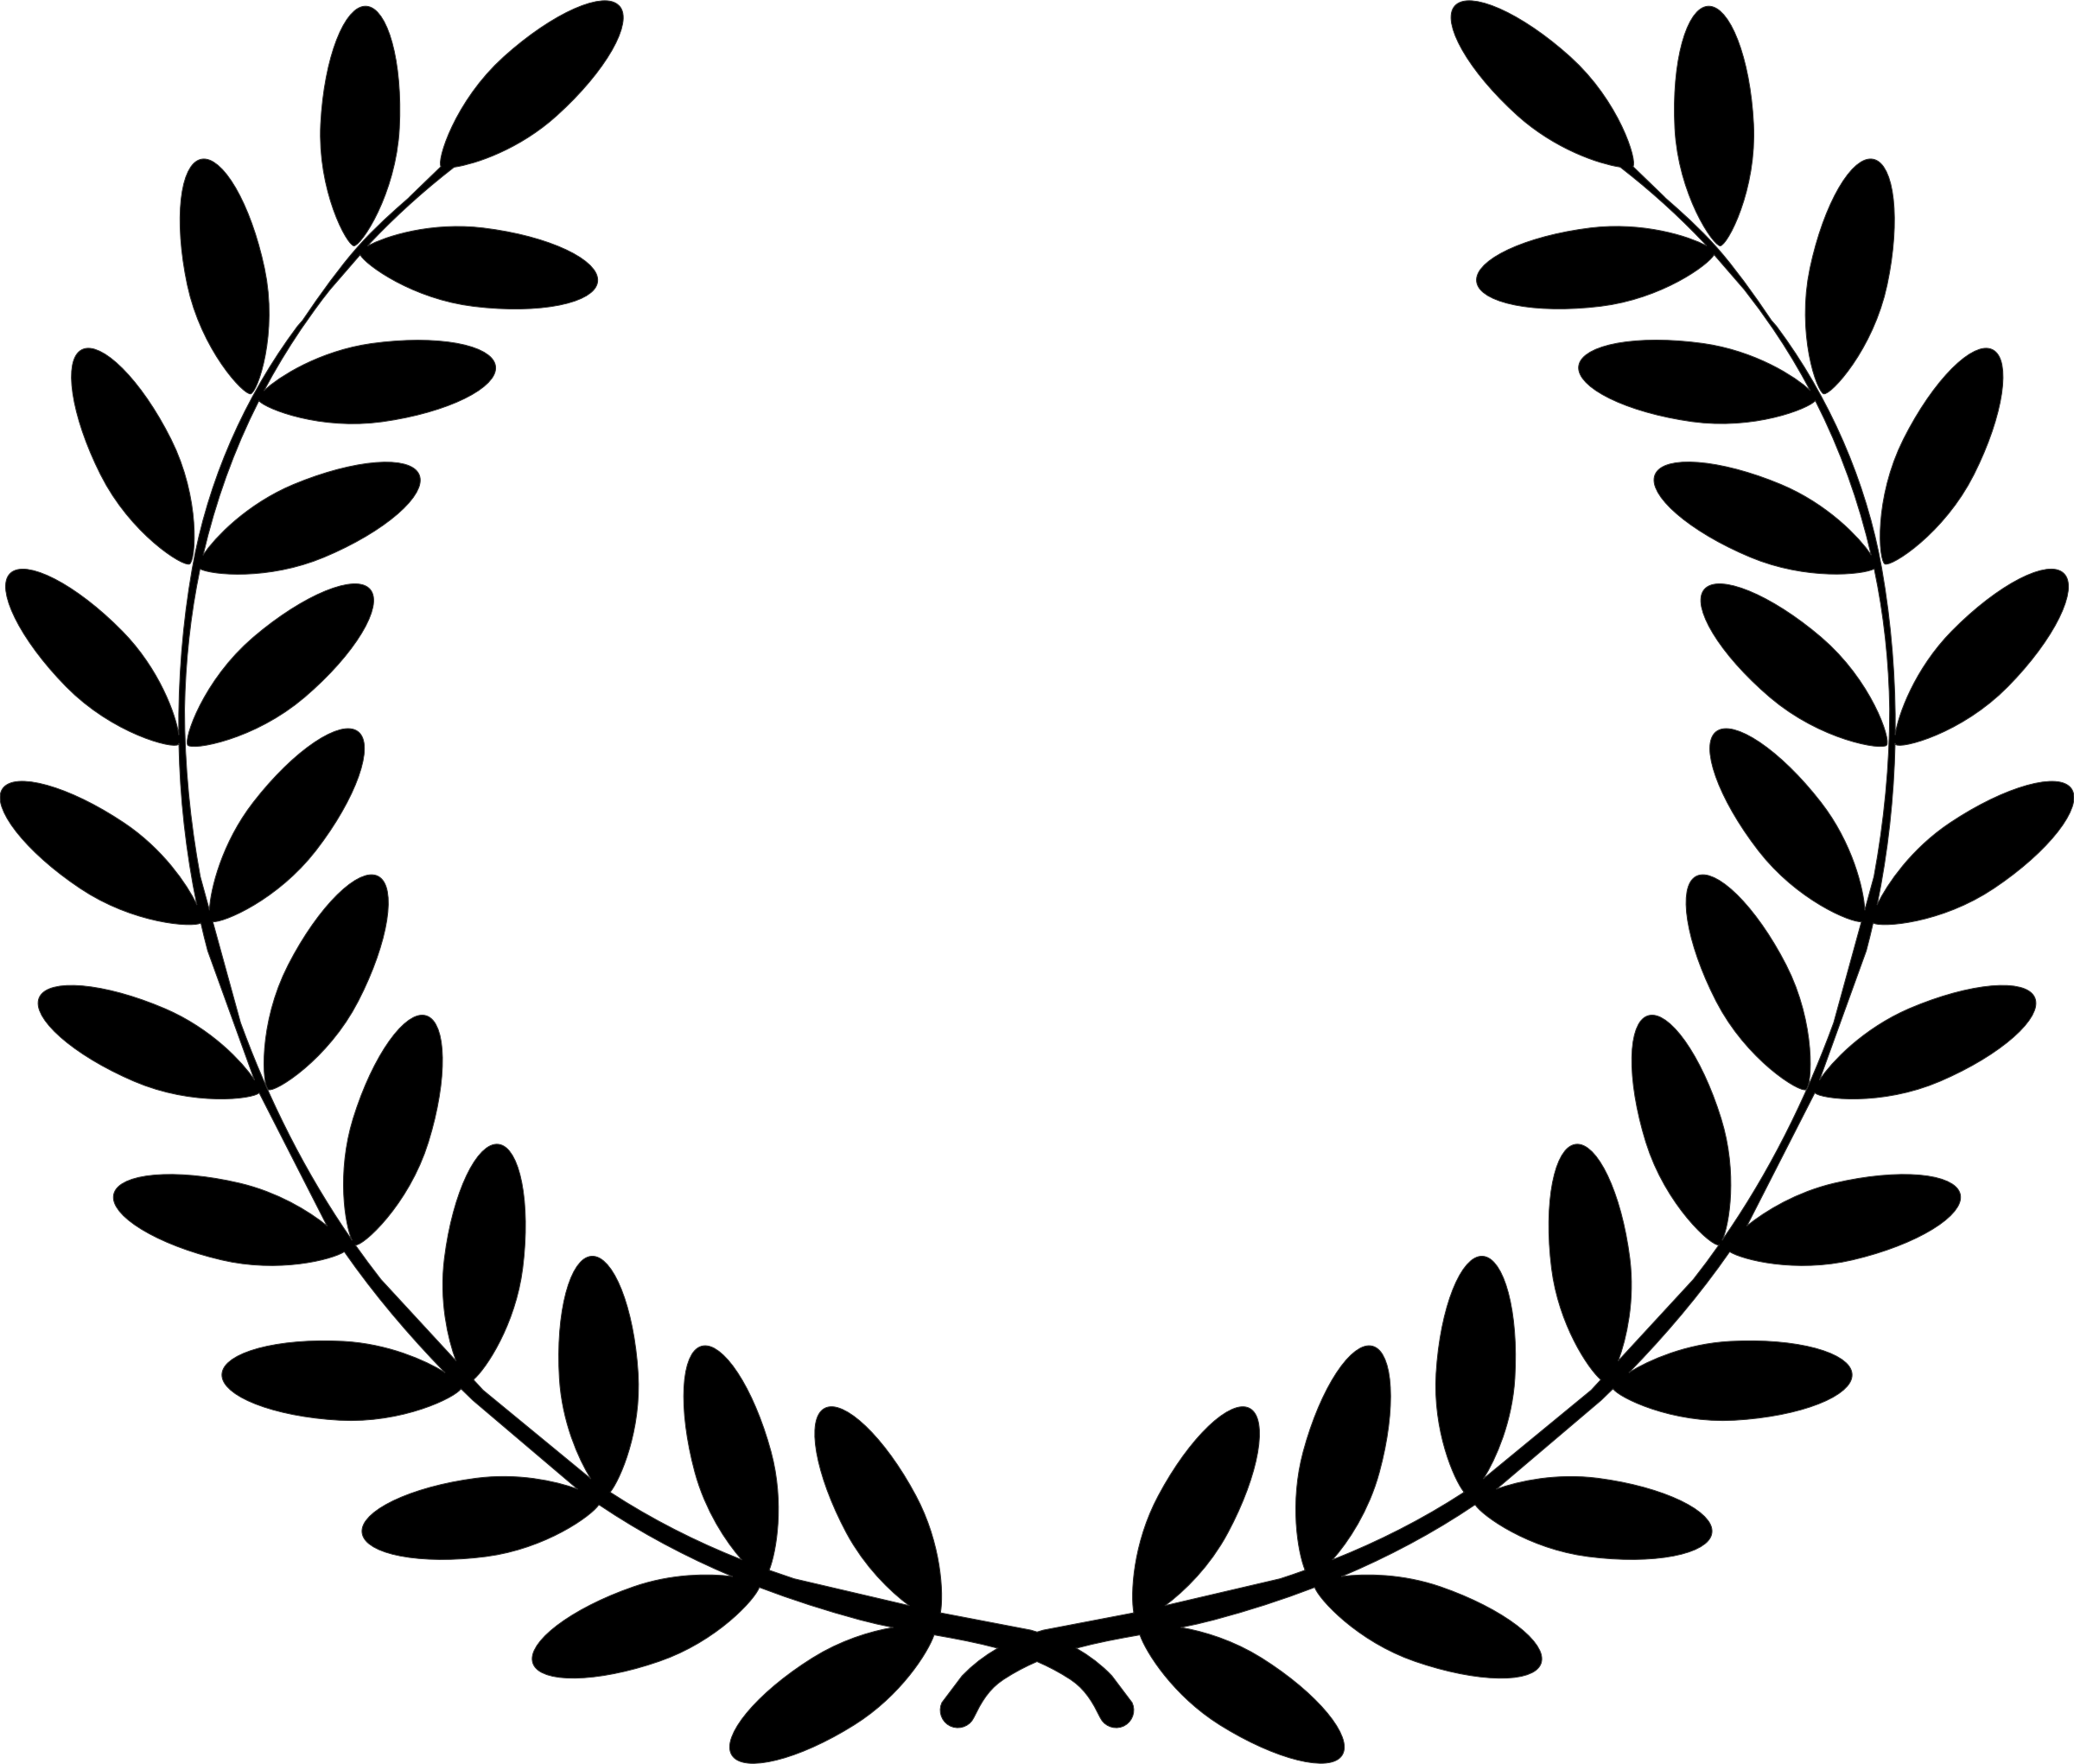 Leaf with crown clipart picture black and white stock 28+ Collection of Laurel Clipart | High quality, free cliparts ... picture black and white stock